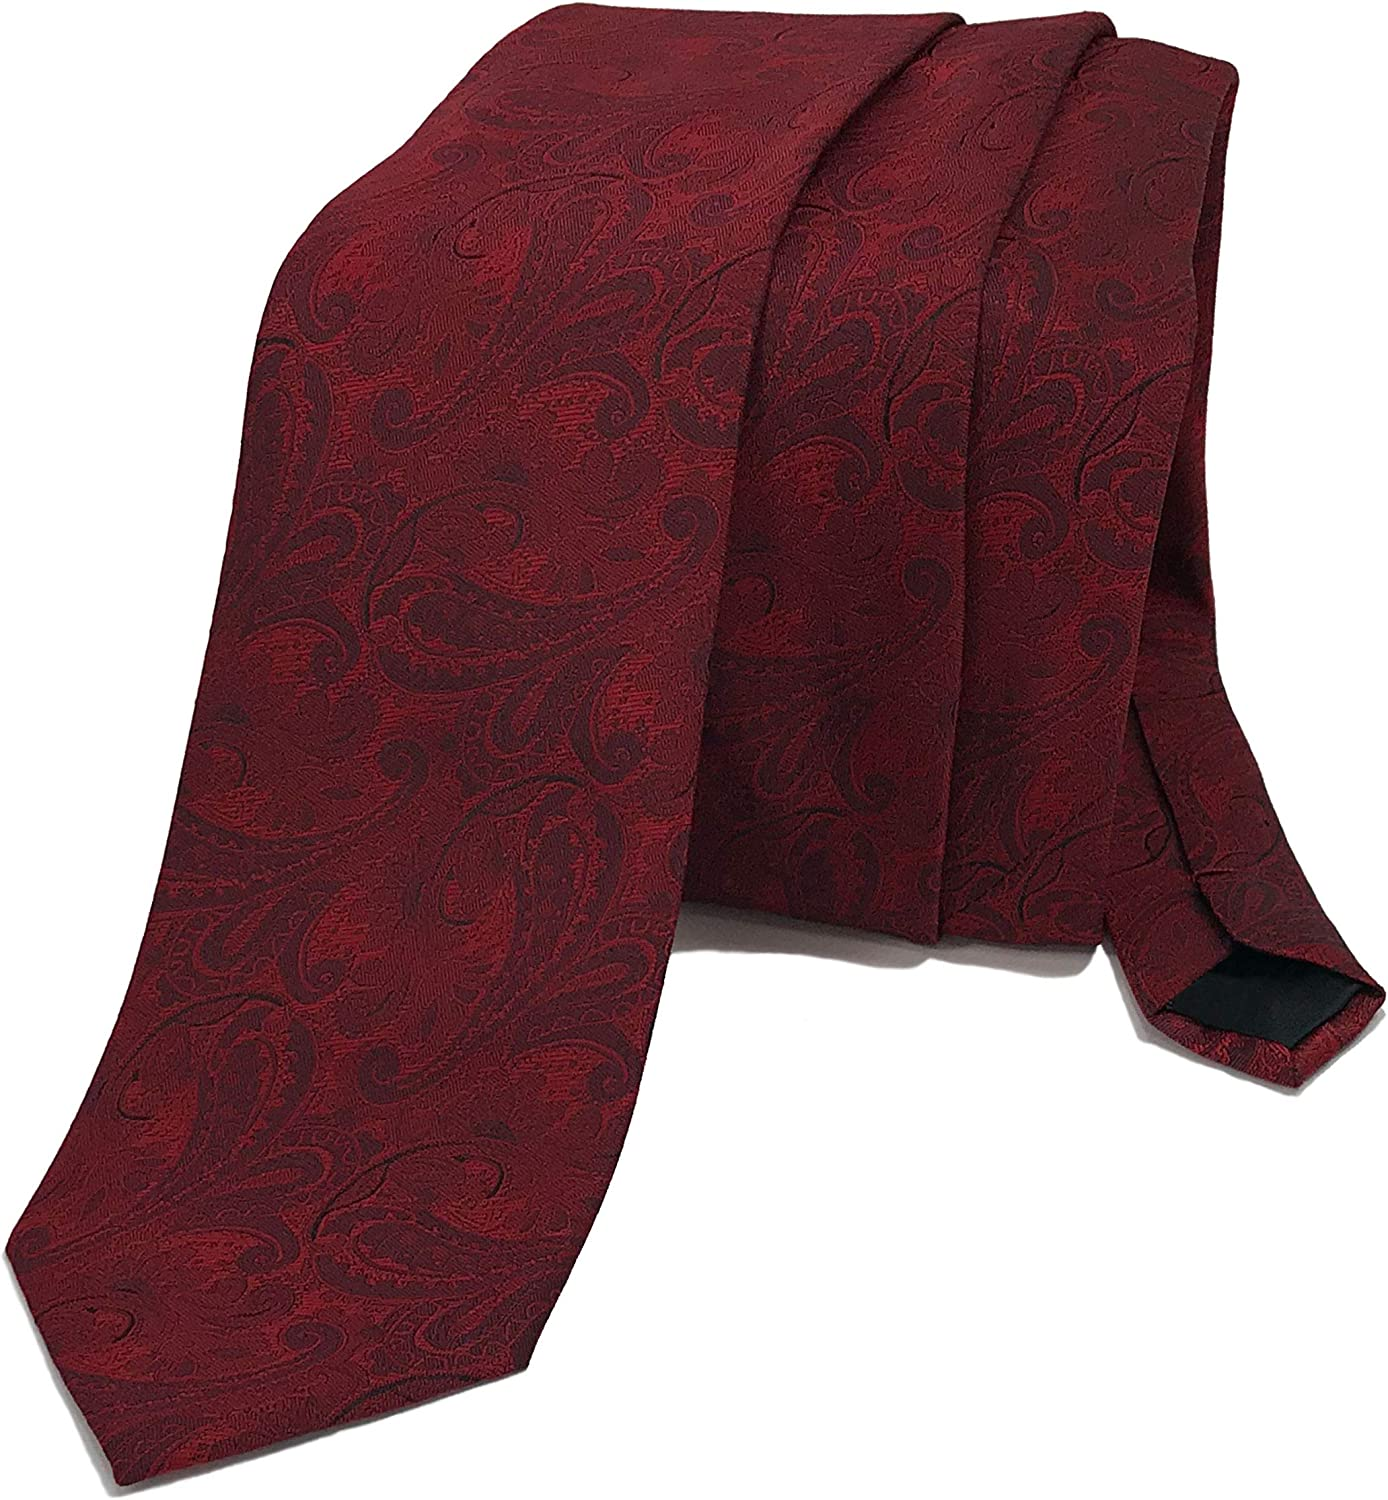 Spencer J's Paisley Patterned Necktie